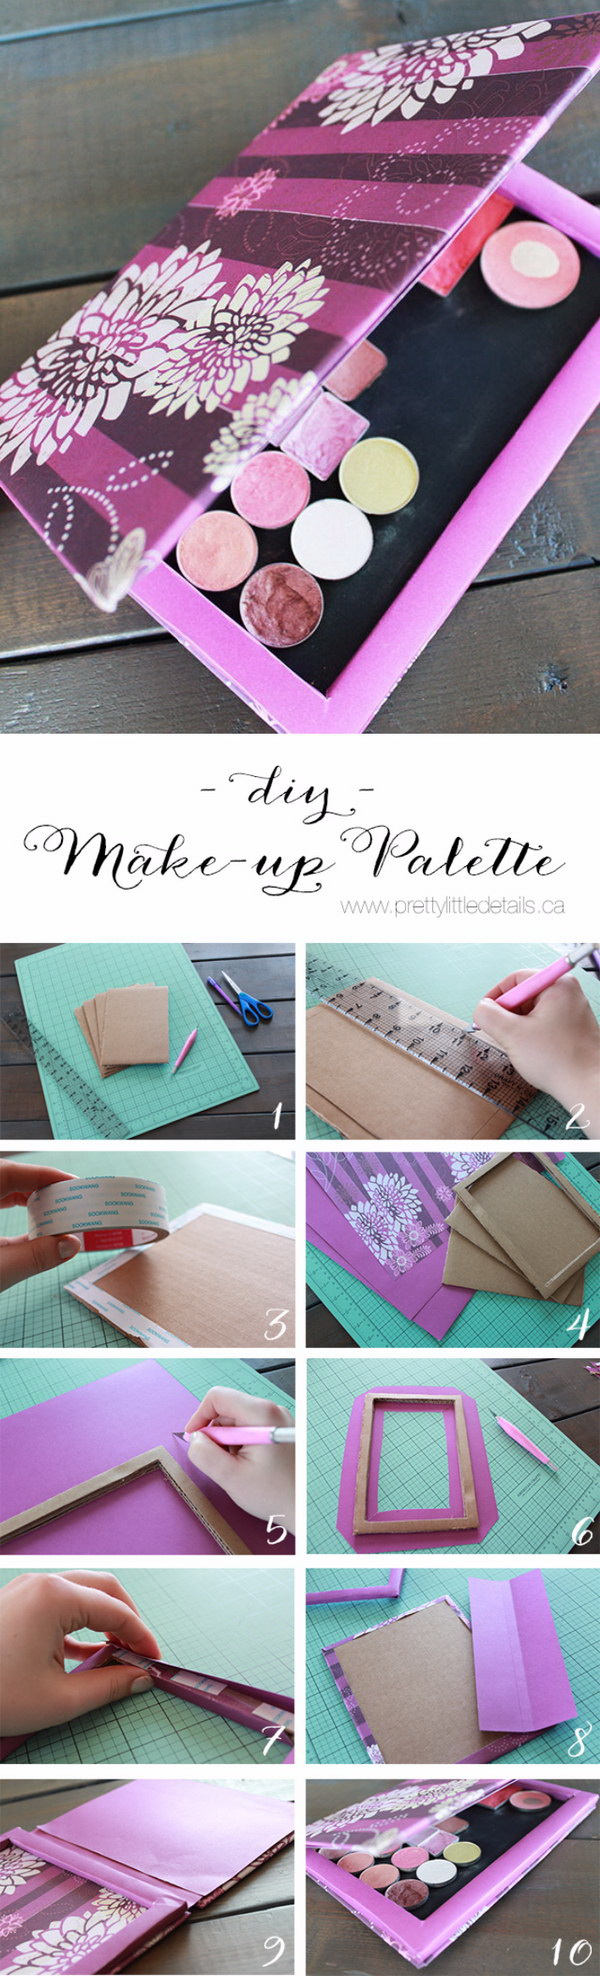 Forum on this topic: How to Make a Magnetic Pin Holder, how-to-make-a-magnetic-pin-holder/